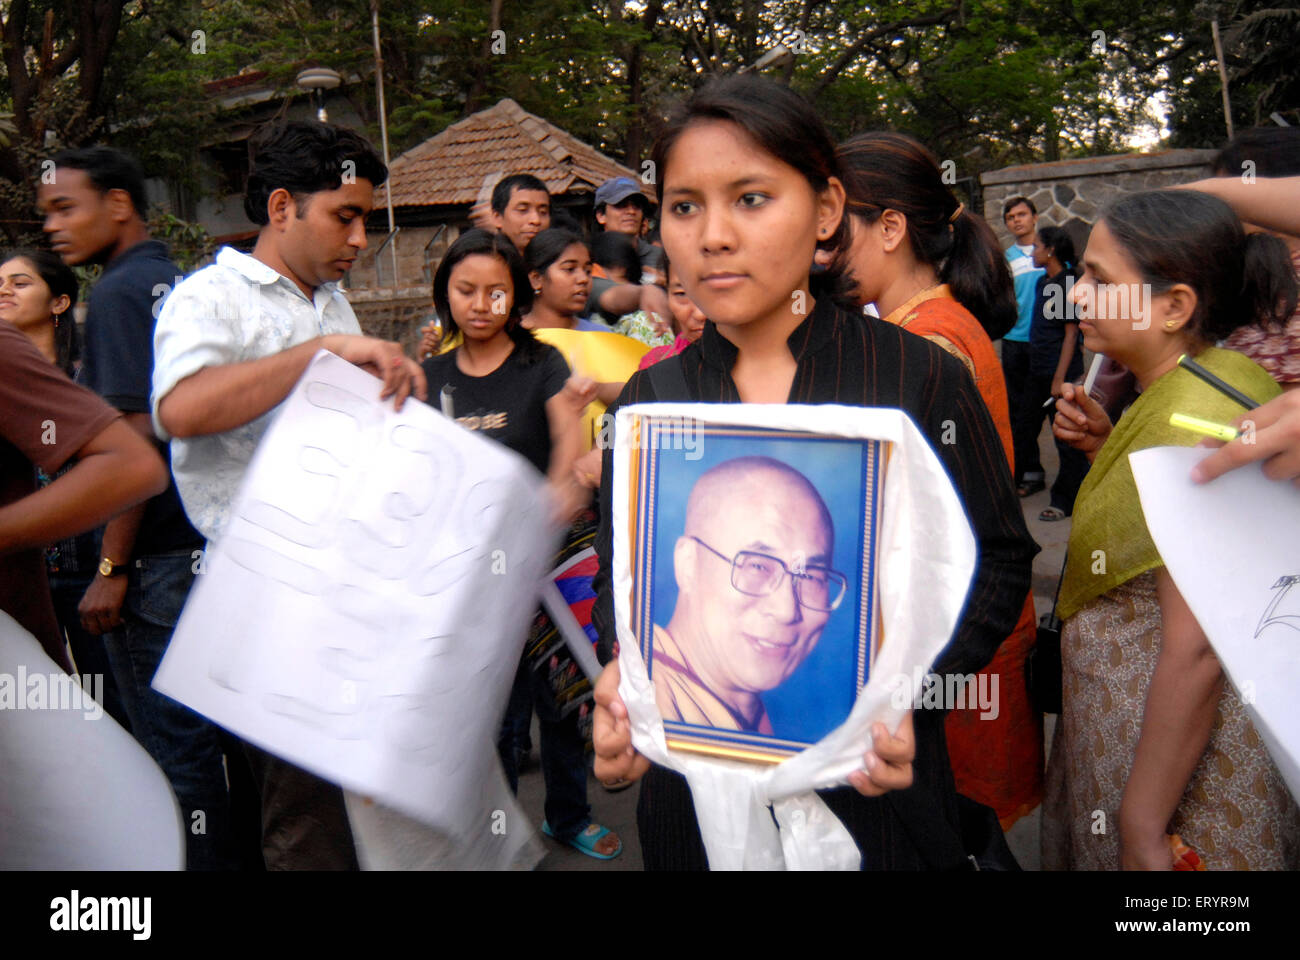 Tibetans holding photograph of Dalai Lama protesting against Chinese crackdown in Tibet ; Bombay - Stock Image